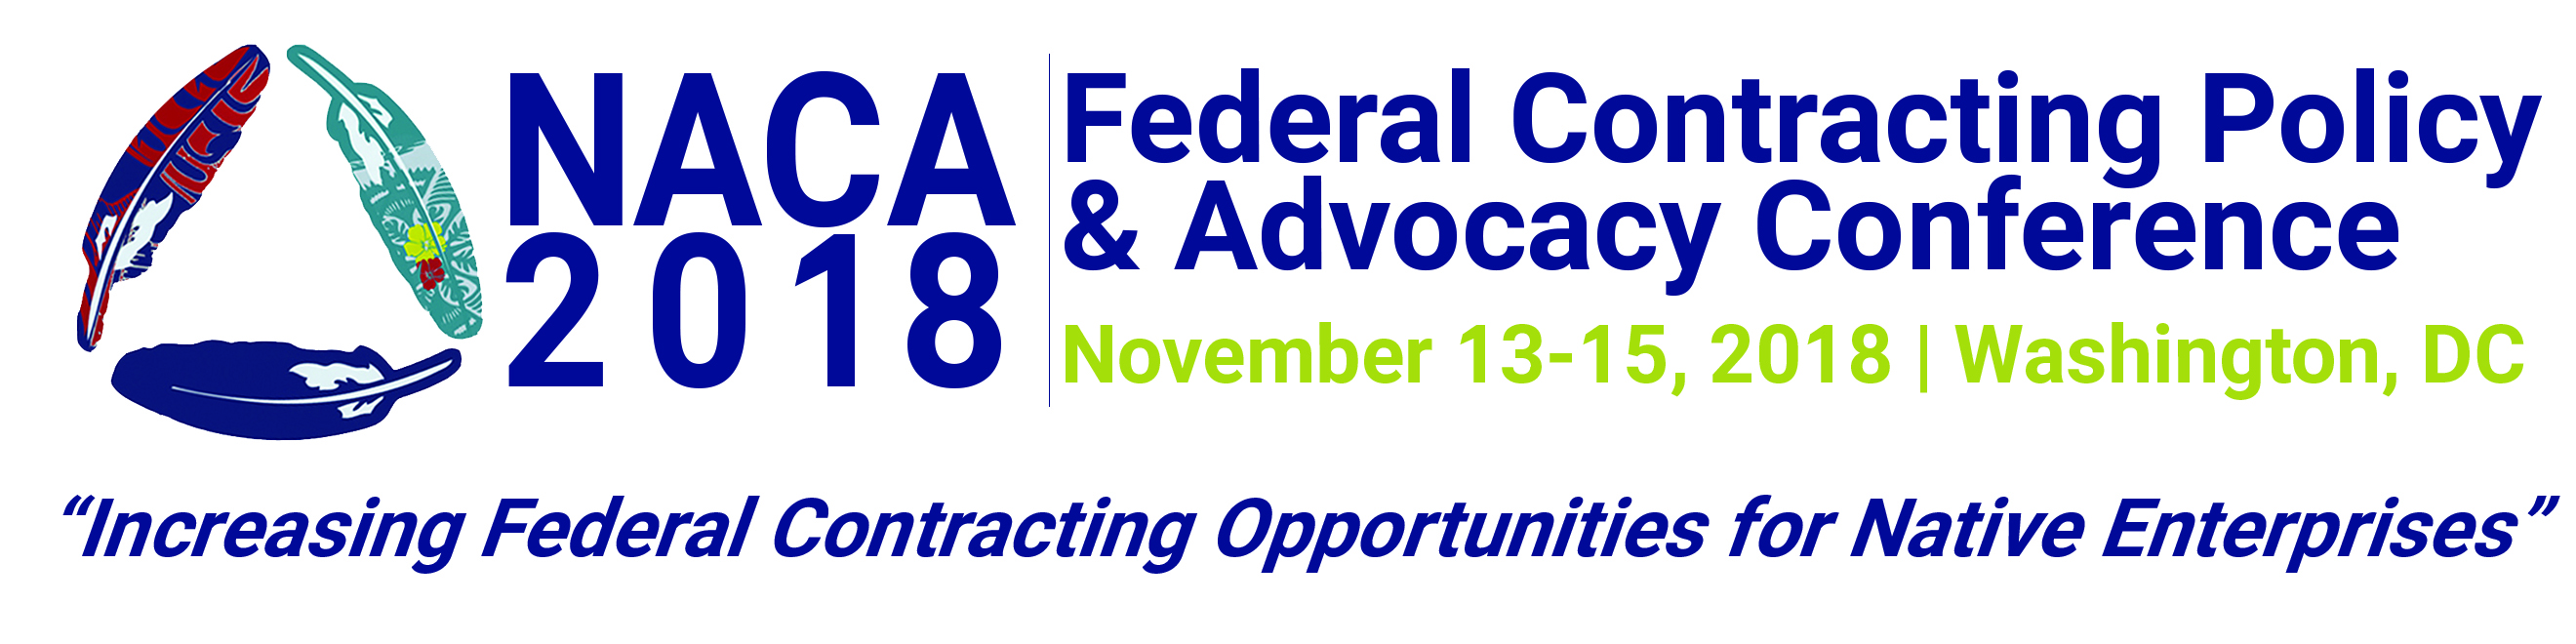 NACA 2018 Federal Contracting Policy and Advocacy Conference